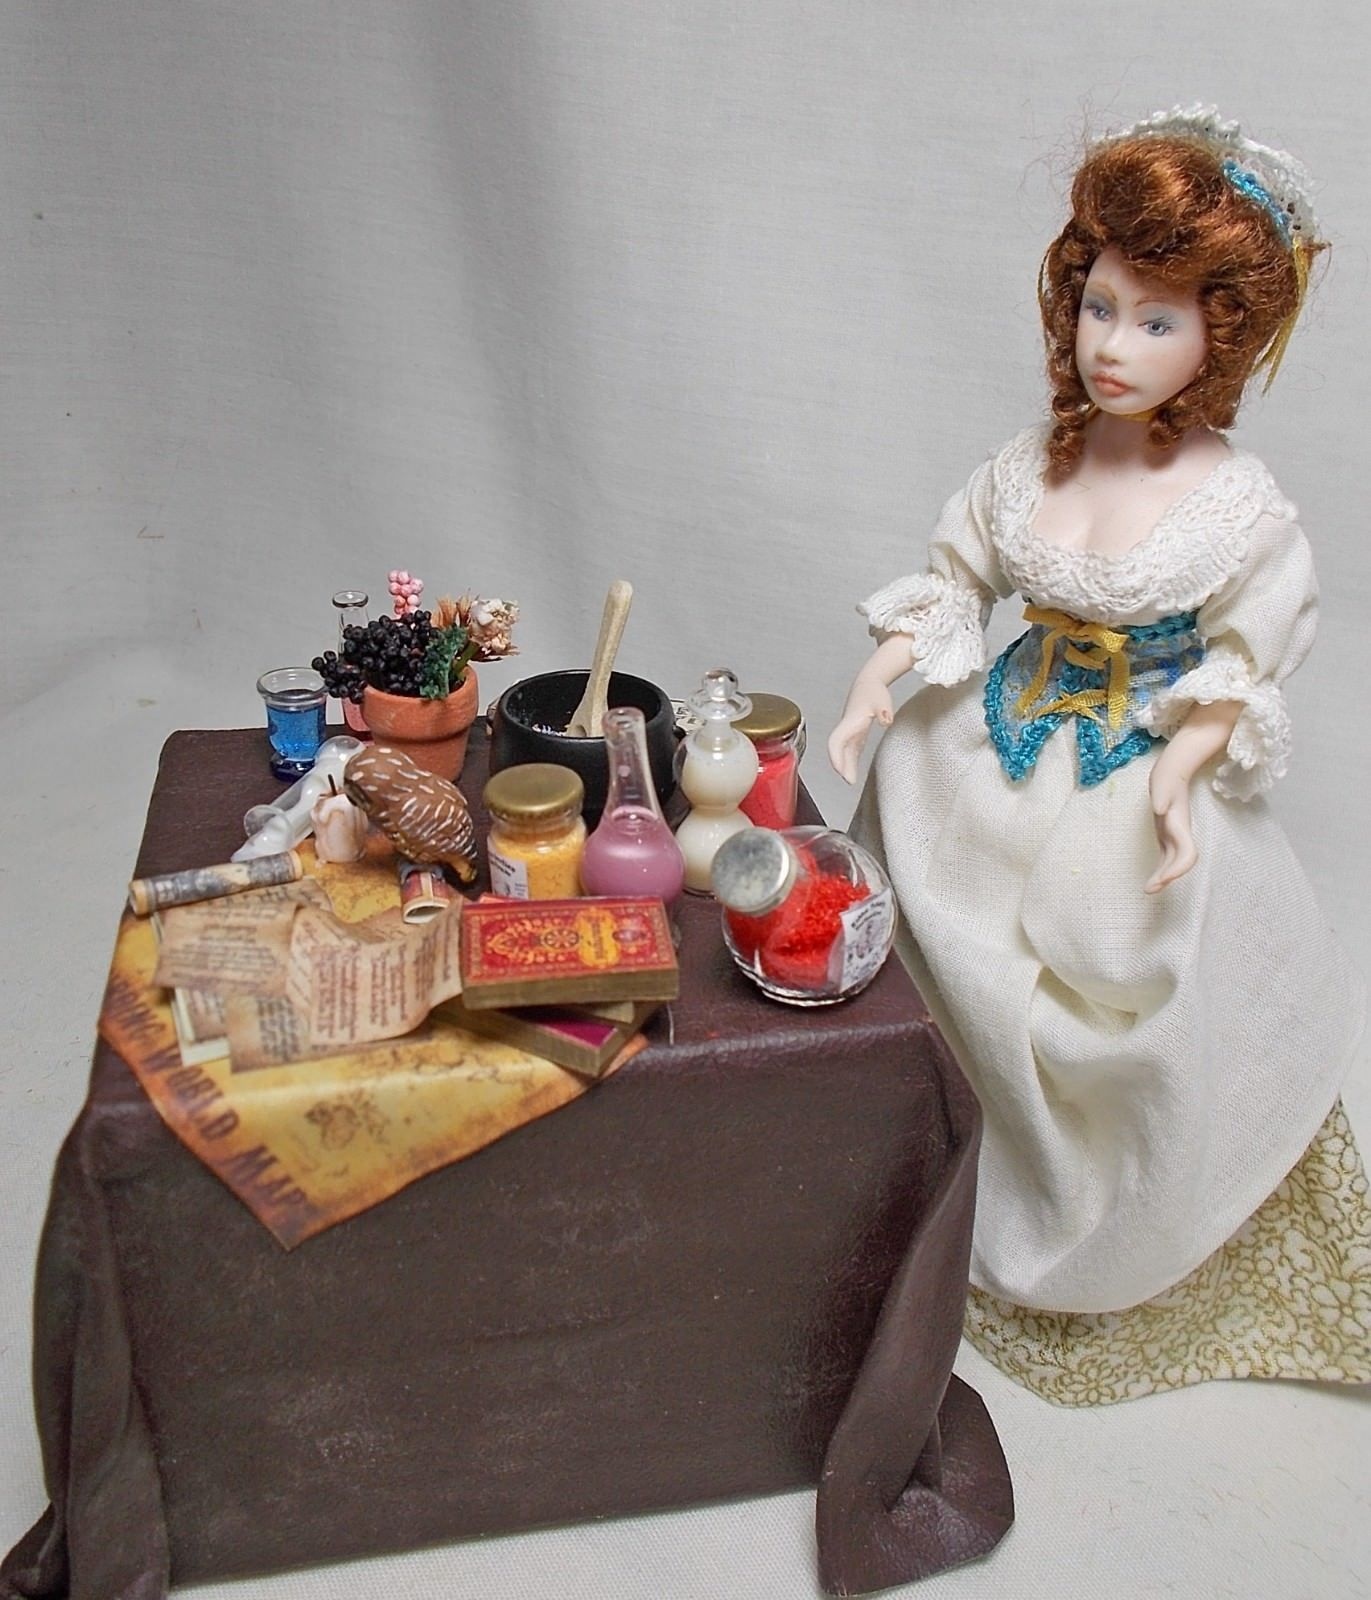 Dollhouse Automaton Moving Rotating Spoon In Cauldron Potion Filled